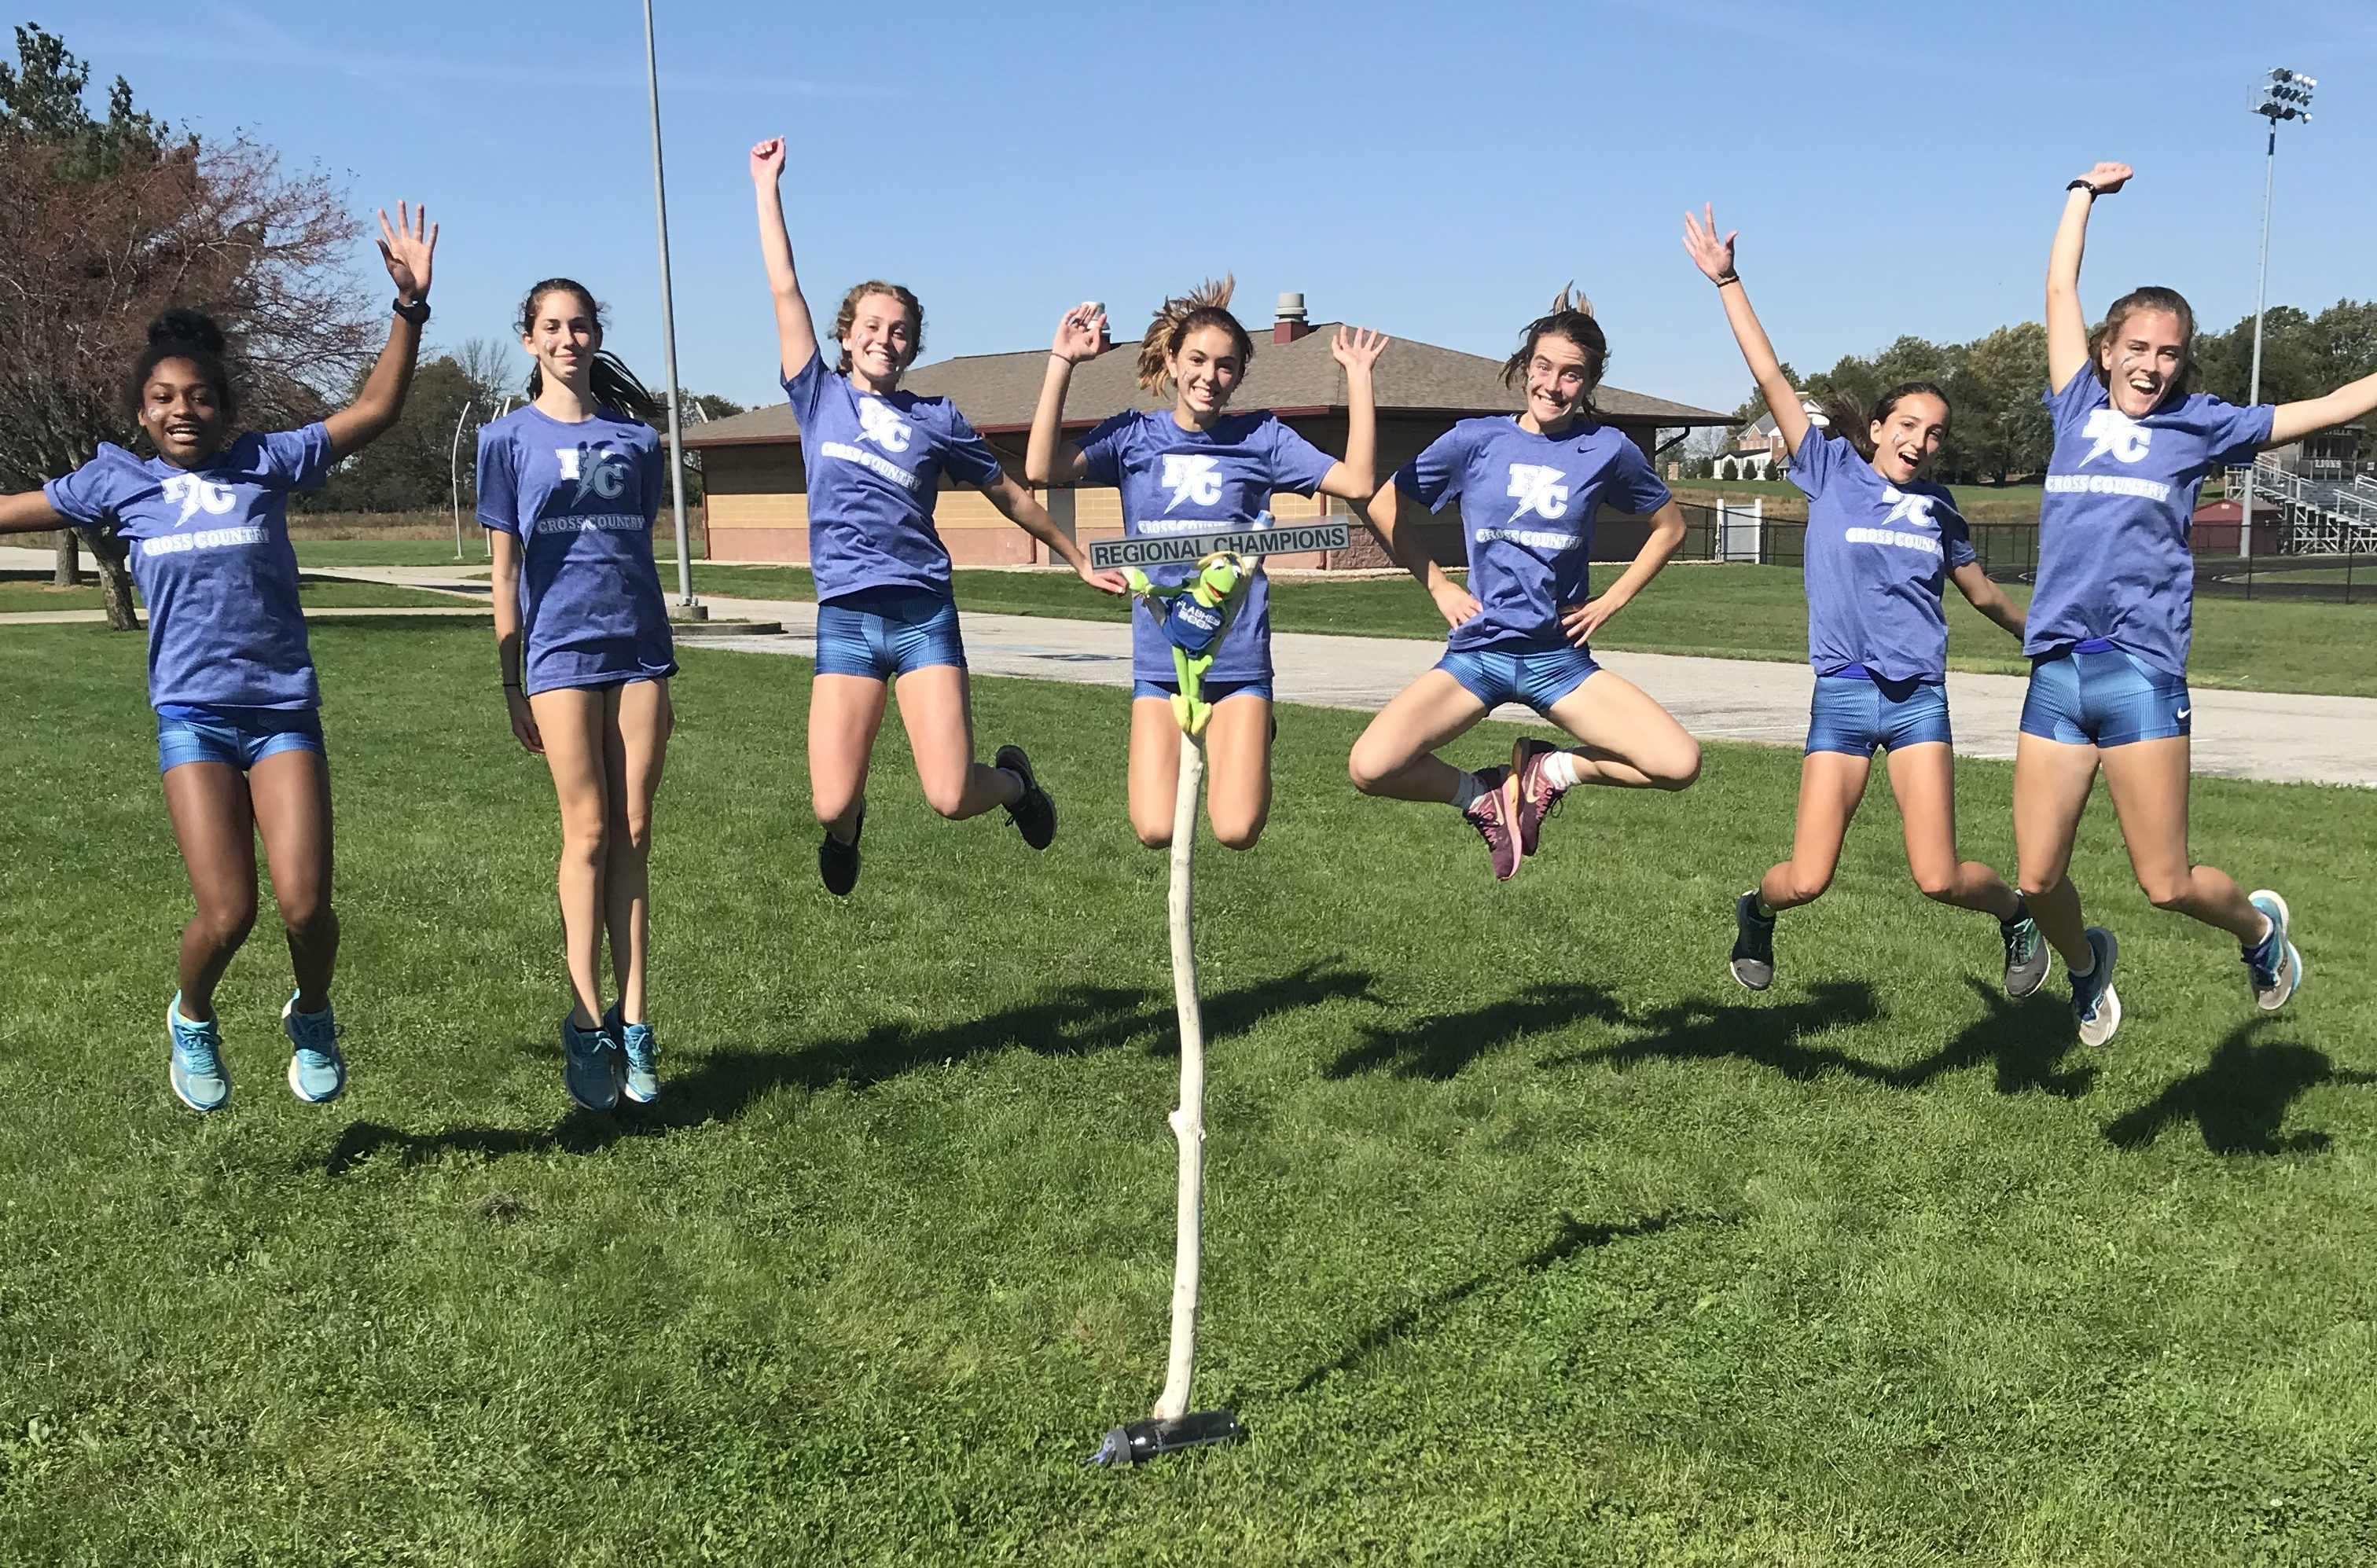 Lady Flashes XC Wins Big at Regionals